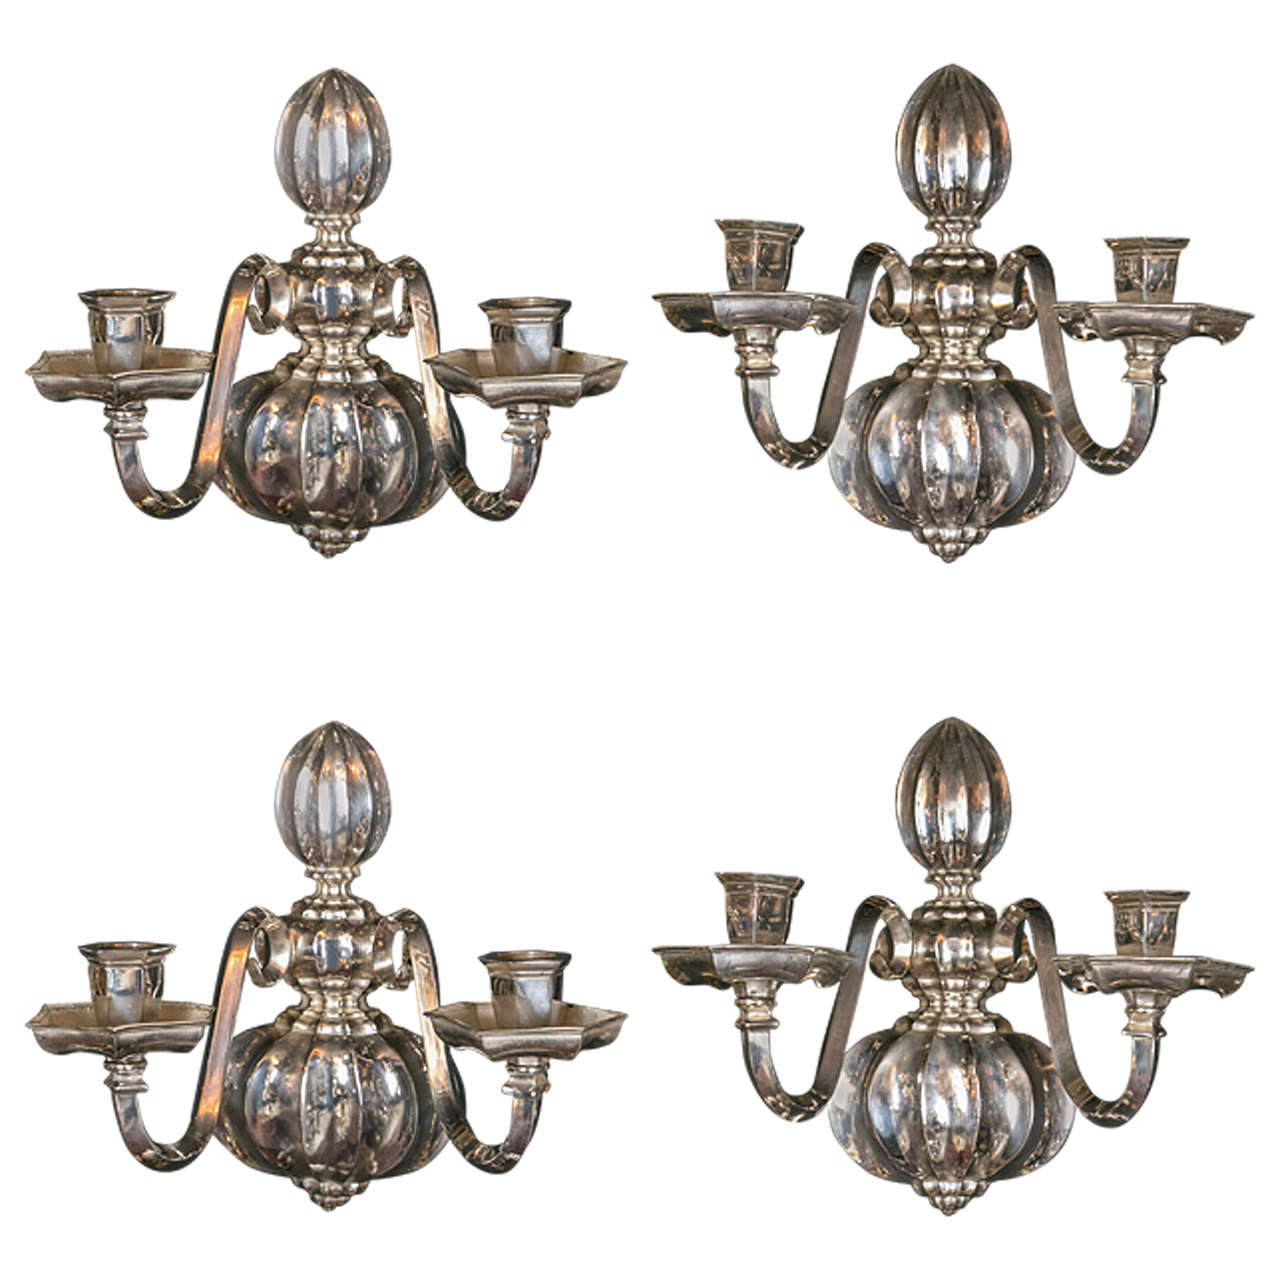 Pair of Caldwell Silverplated Sconces, circa 1920